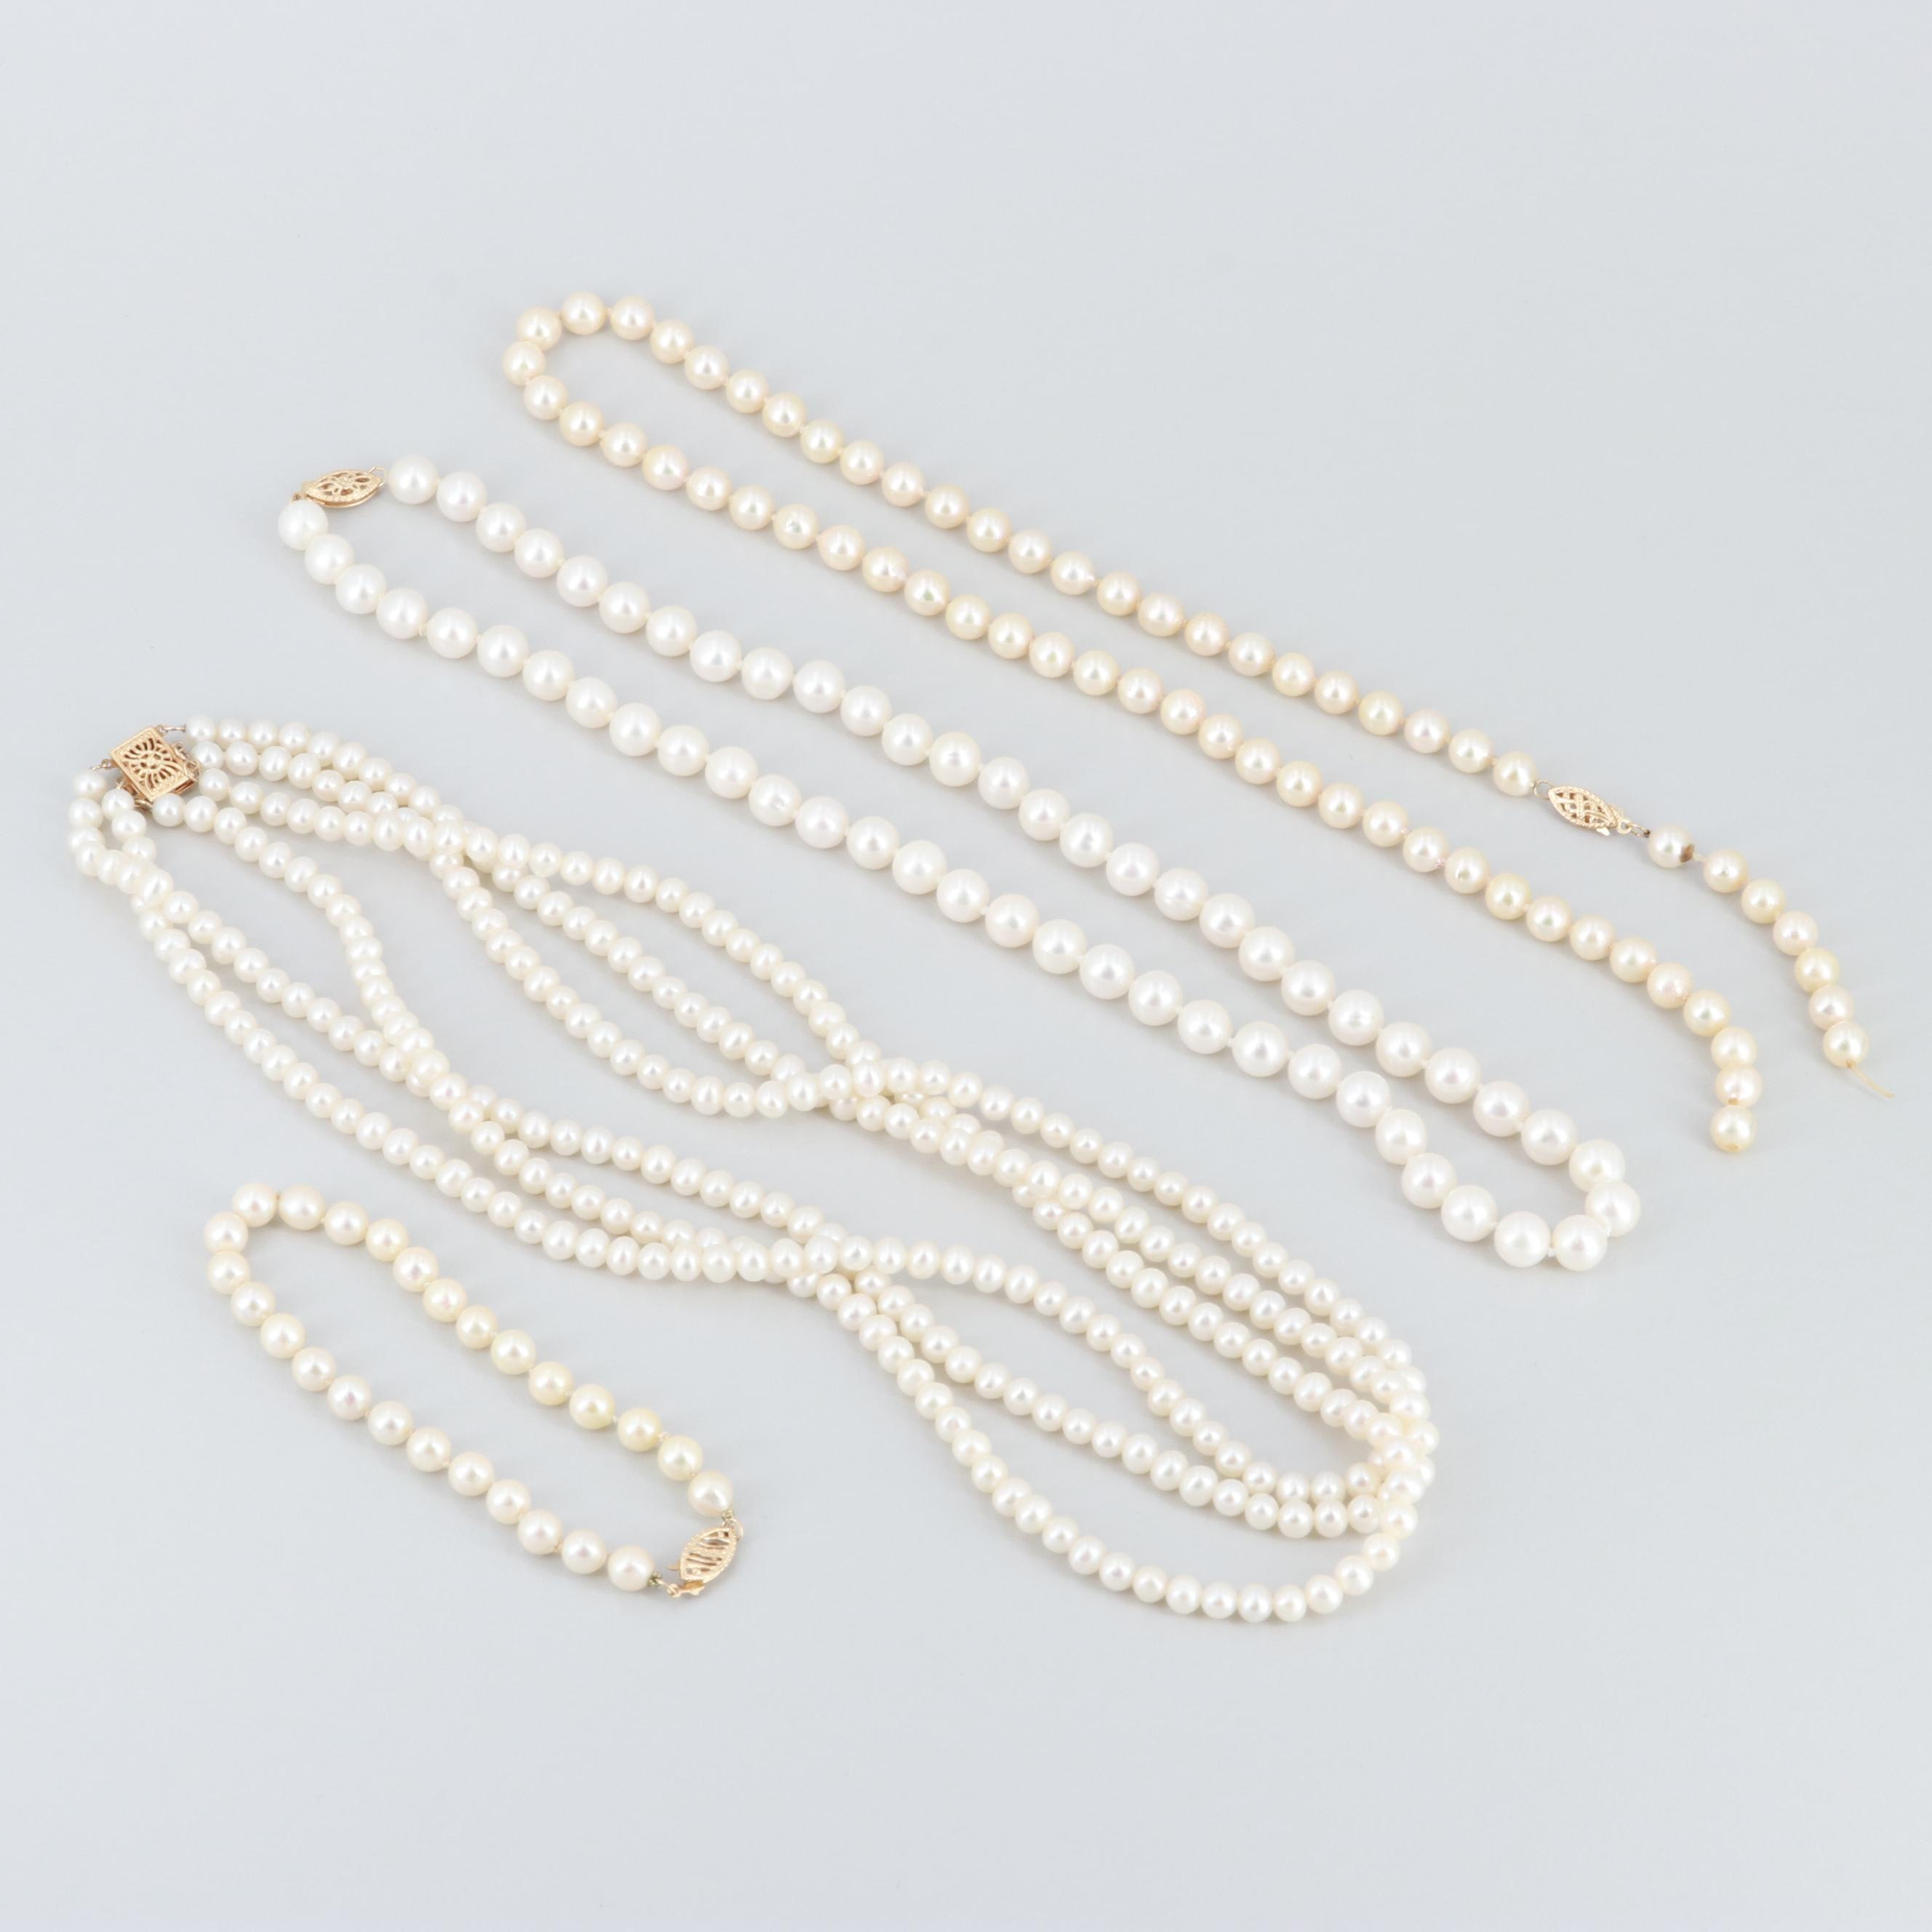 14K Yellow Gold Cultured Pearl Necklaces and Bracelet